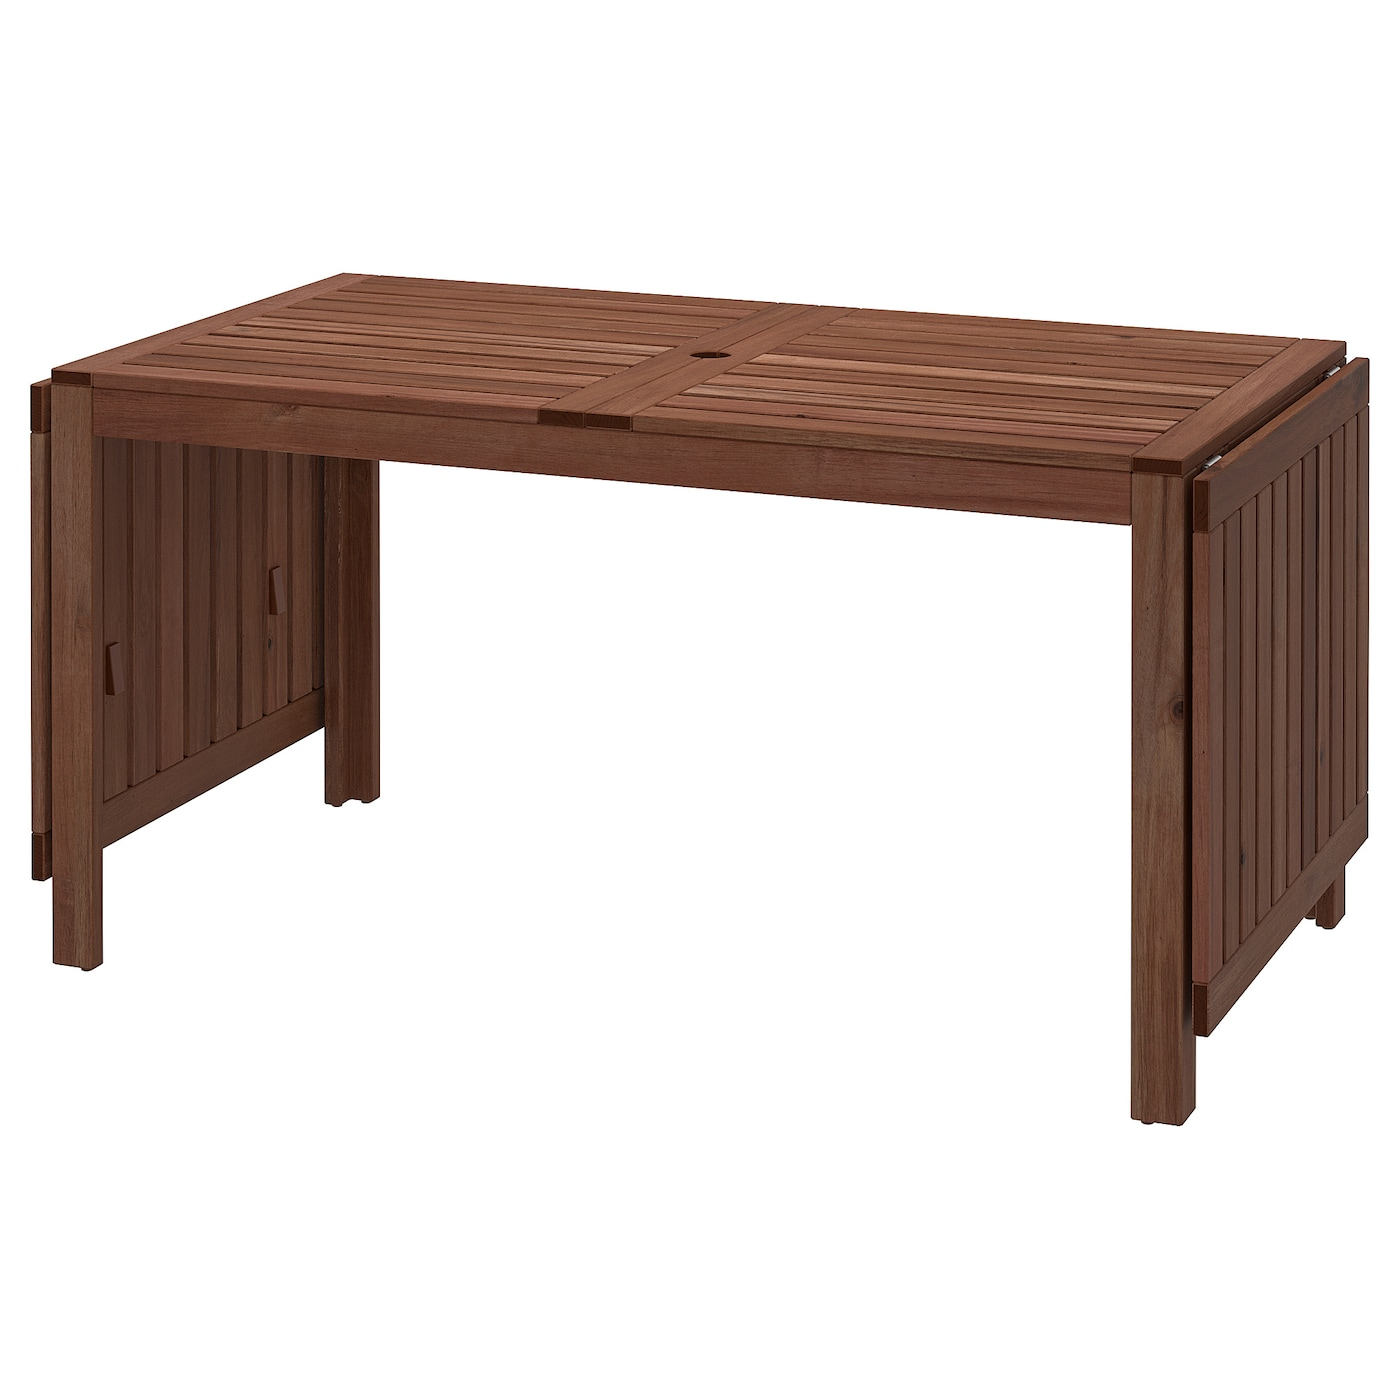 "ÄPPLARÖ Drop-leaf table, outdoor - brown stained 122 12/12/712 12/12/1202 12/12x120  12/12 "" (12120/12/12x712 cm)"